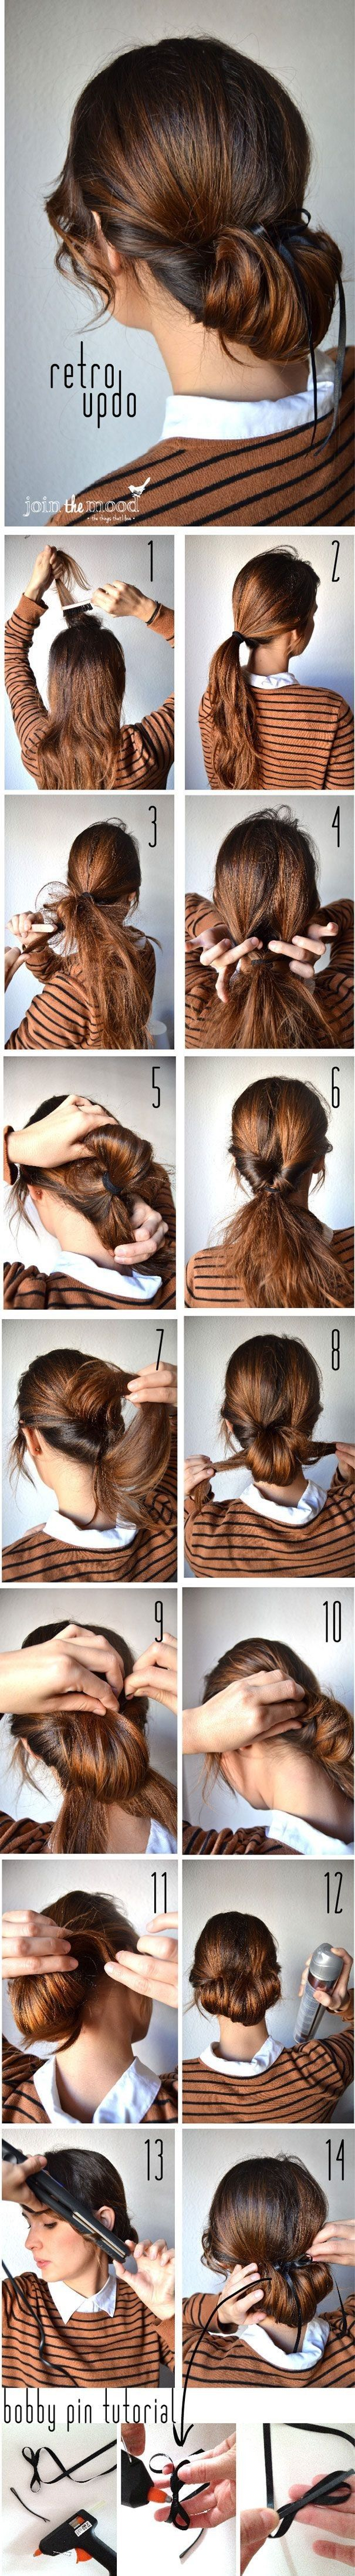 12 Trendy Low Bun Updo Hairstyles Tutorials: Easy Cute ...